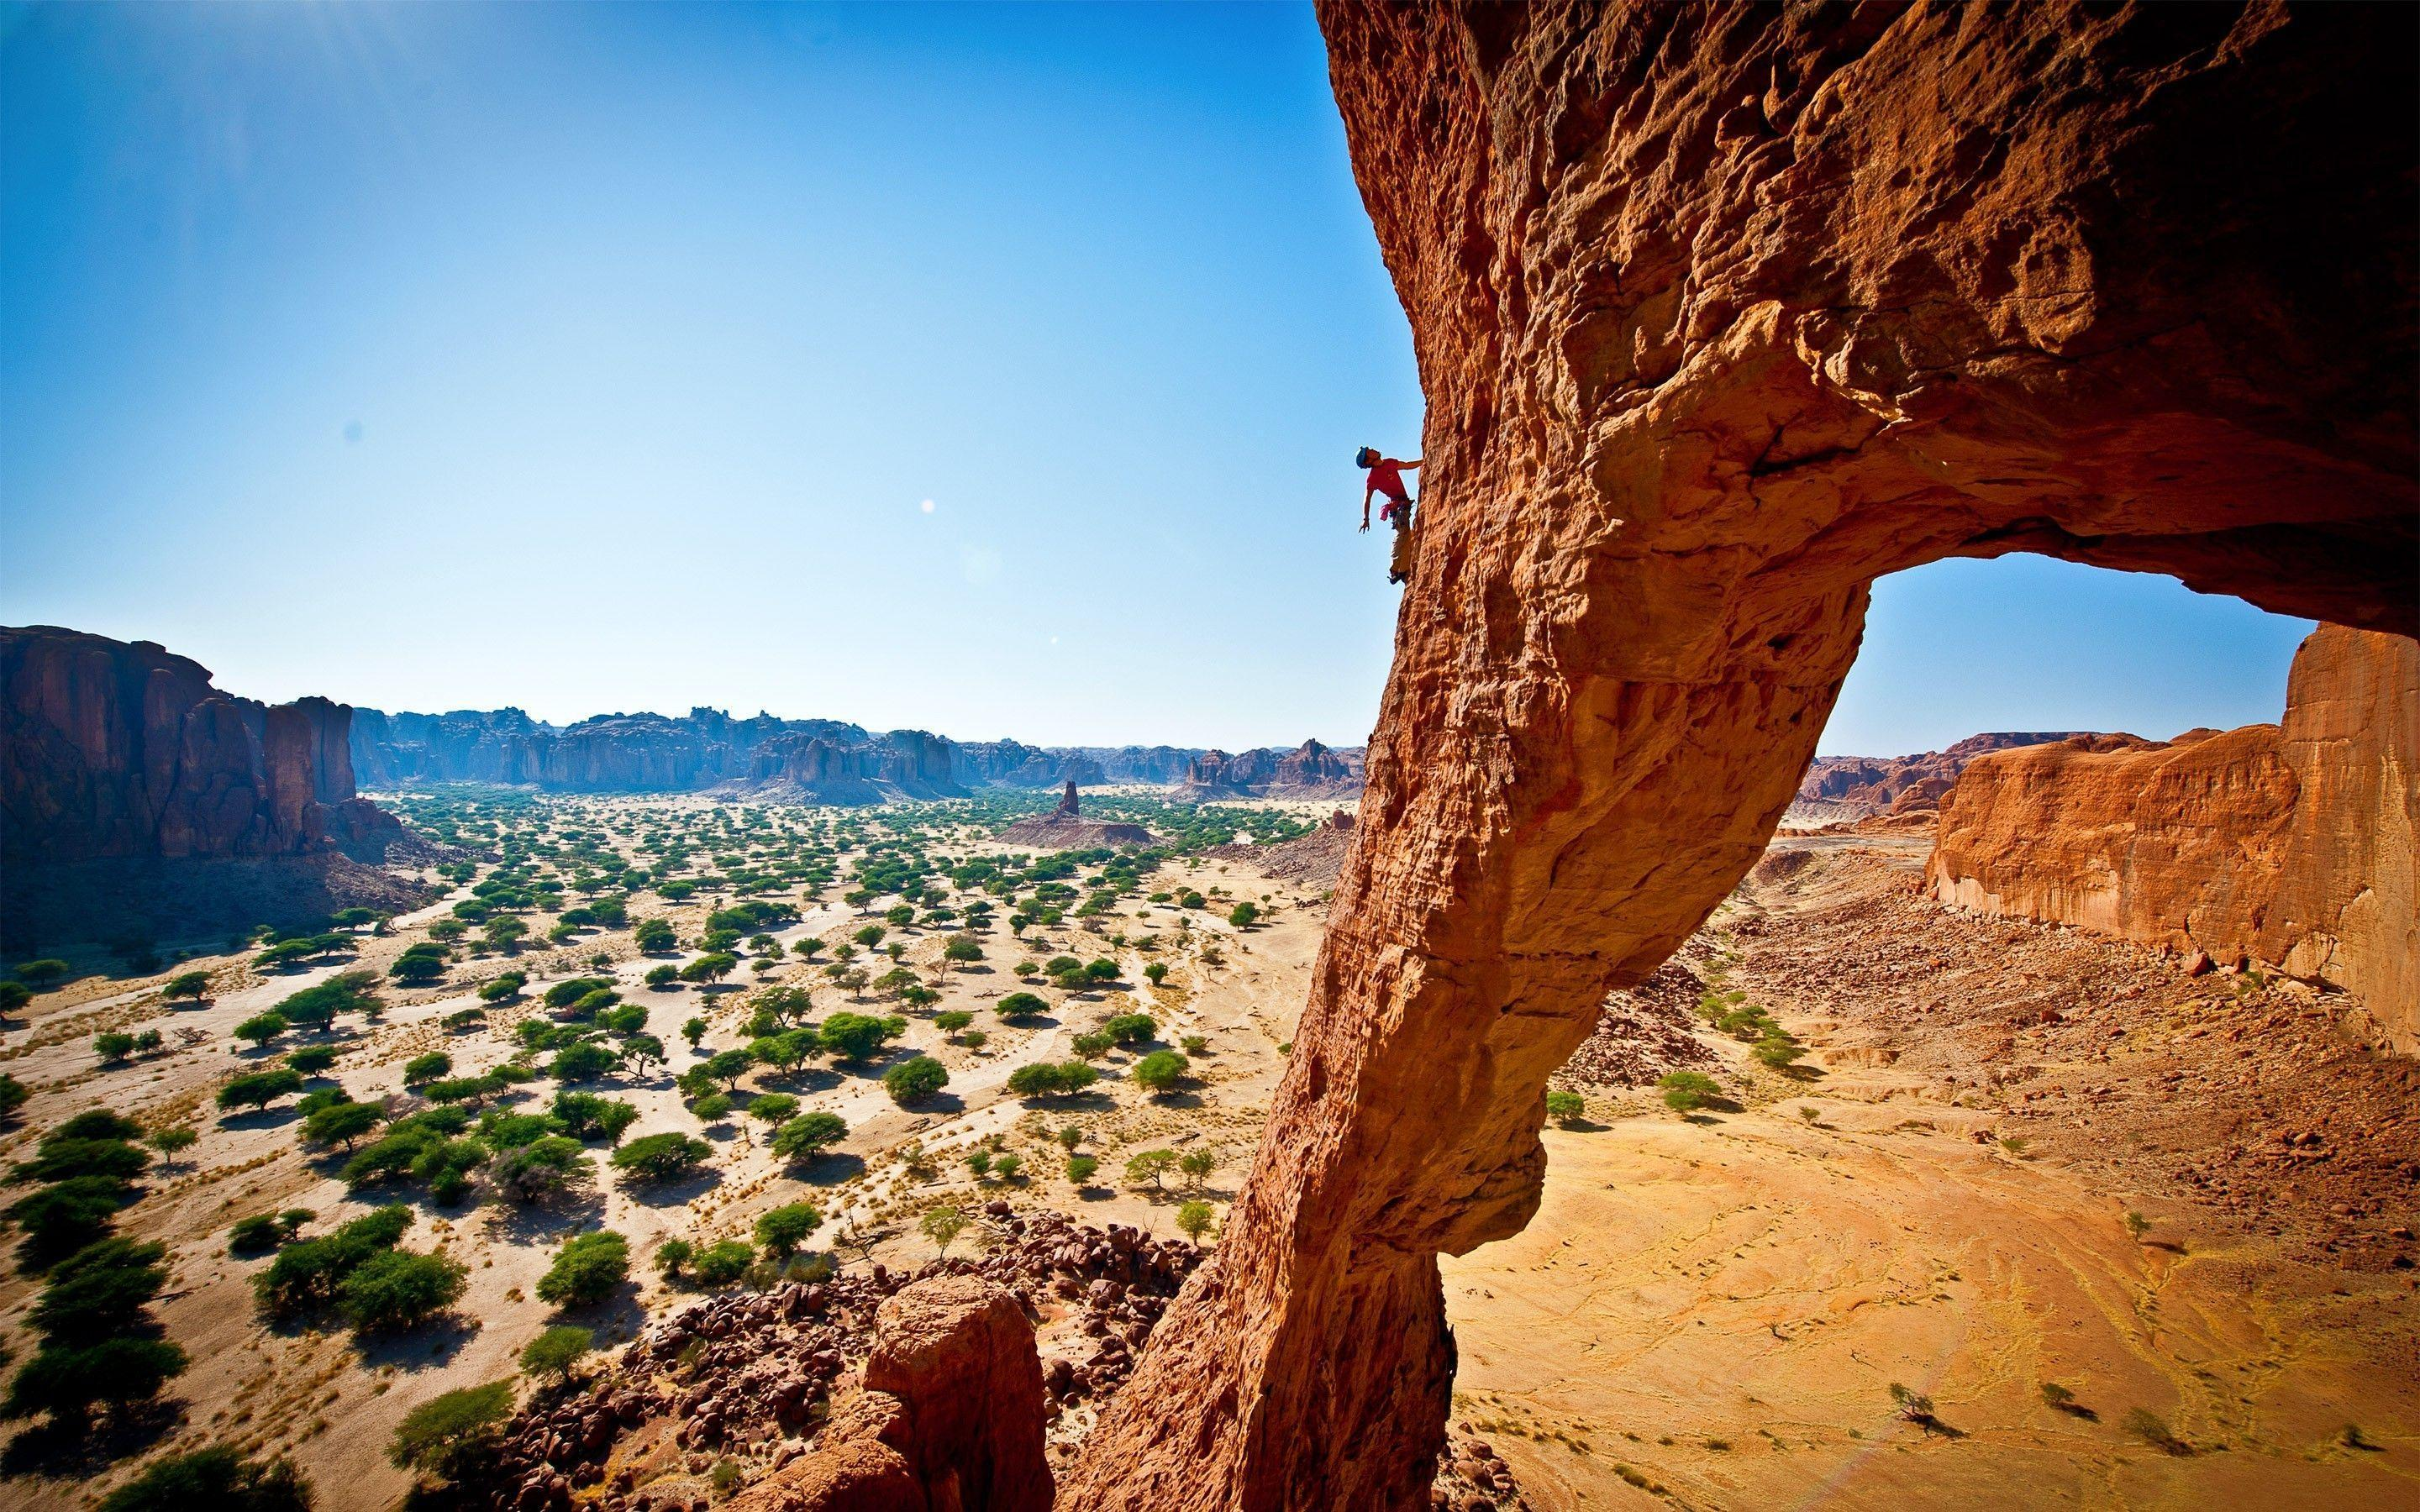 photography, Nature, Landscape, Rock Climbing, Climbing, Desert